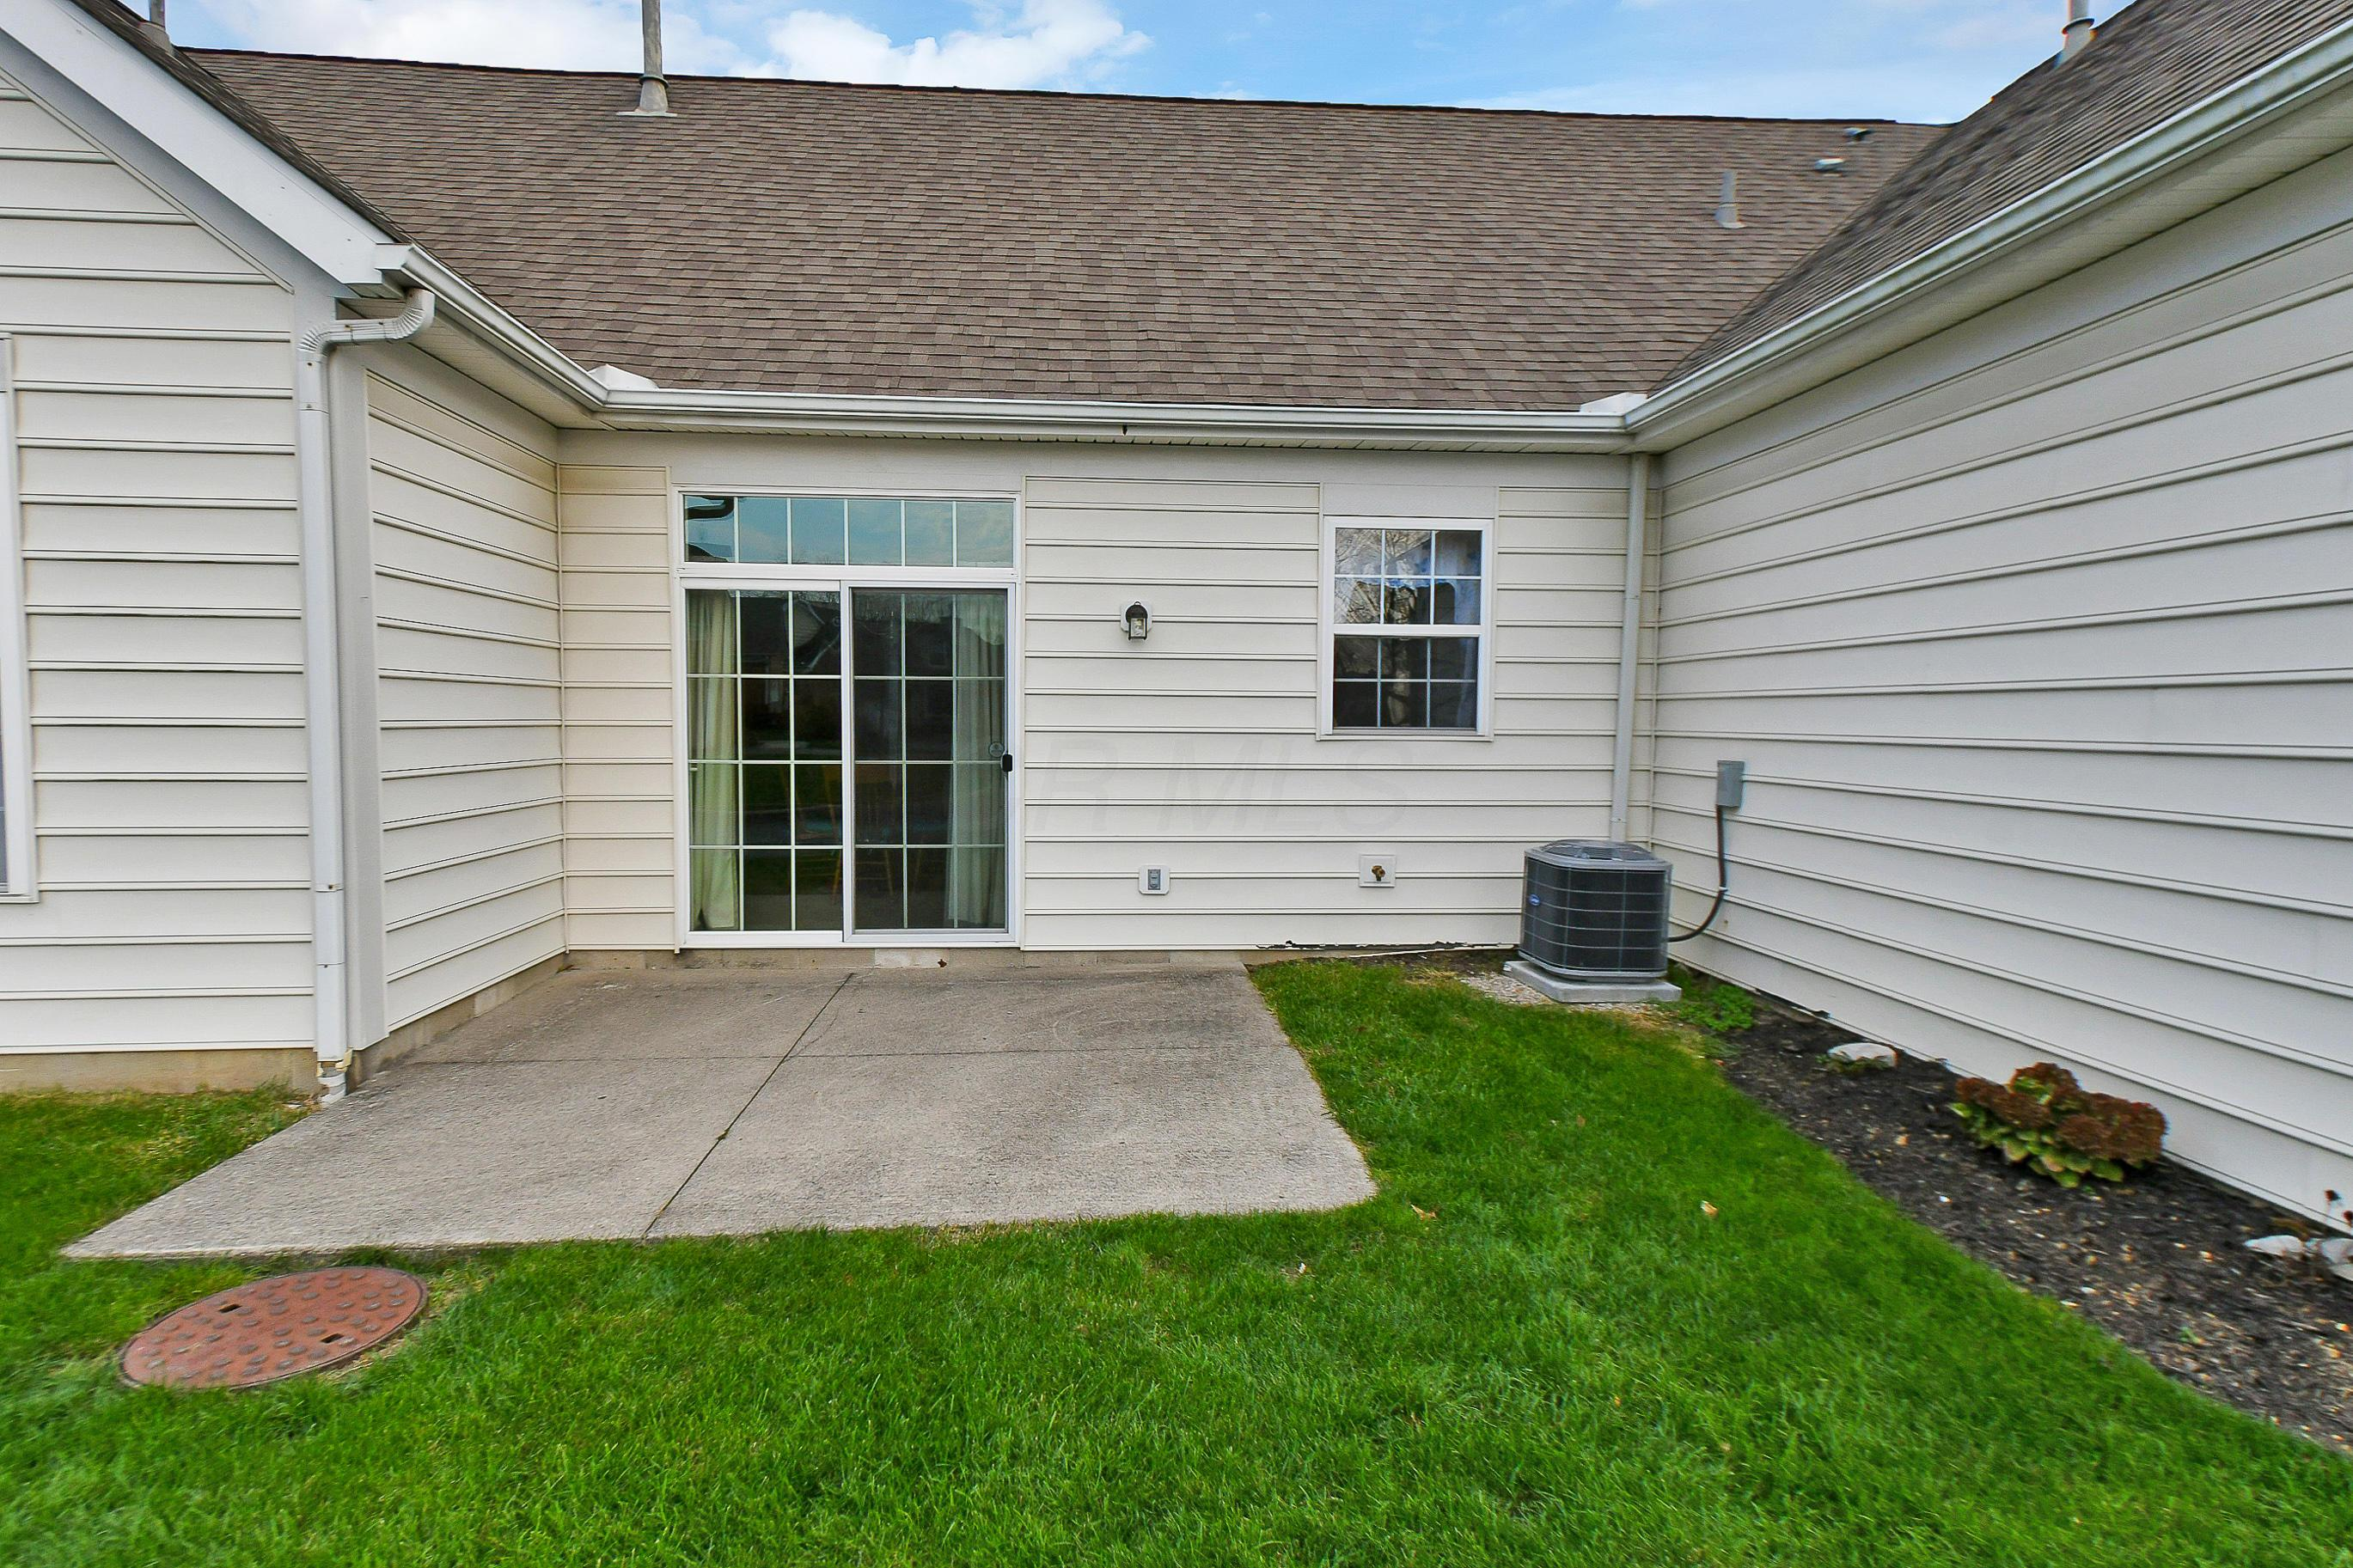 608 Sycamore Turn Lane, Columbus, Ohio 43213, 2 Bedrooms Bedrooms, ,2 BathroomsBathrooms,Residential,For Sale,Sycamore Turn,220041119